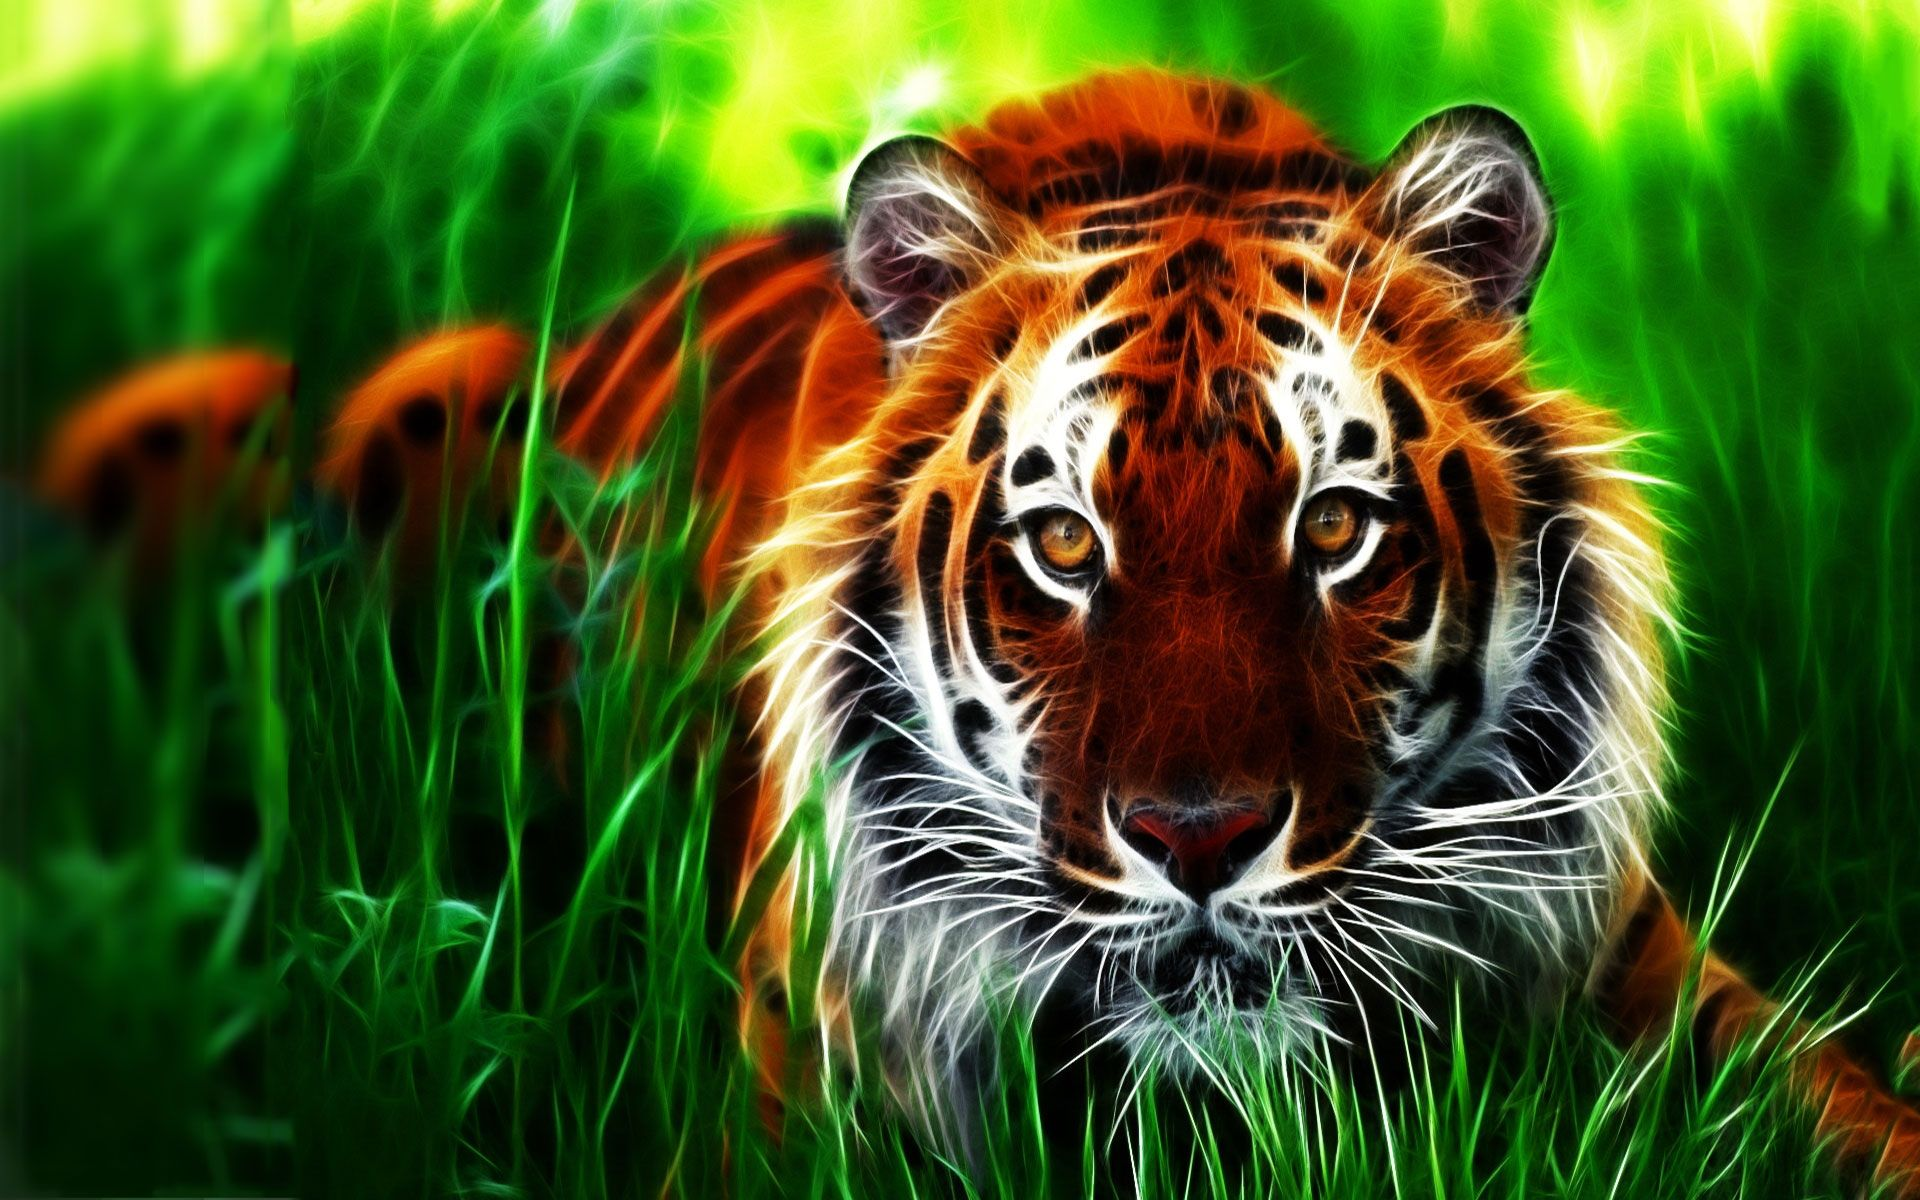 Tiger Wallpaper 3d For Iphone Free Download (With images